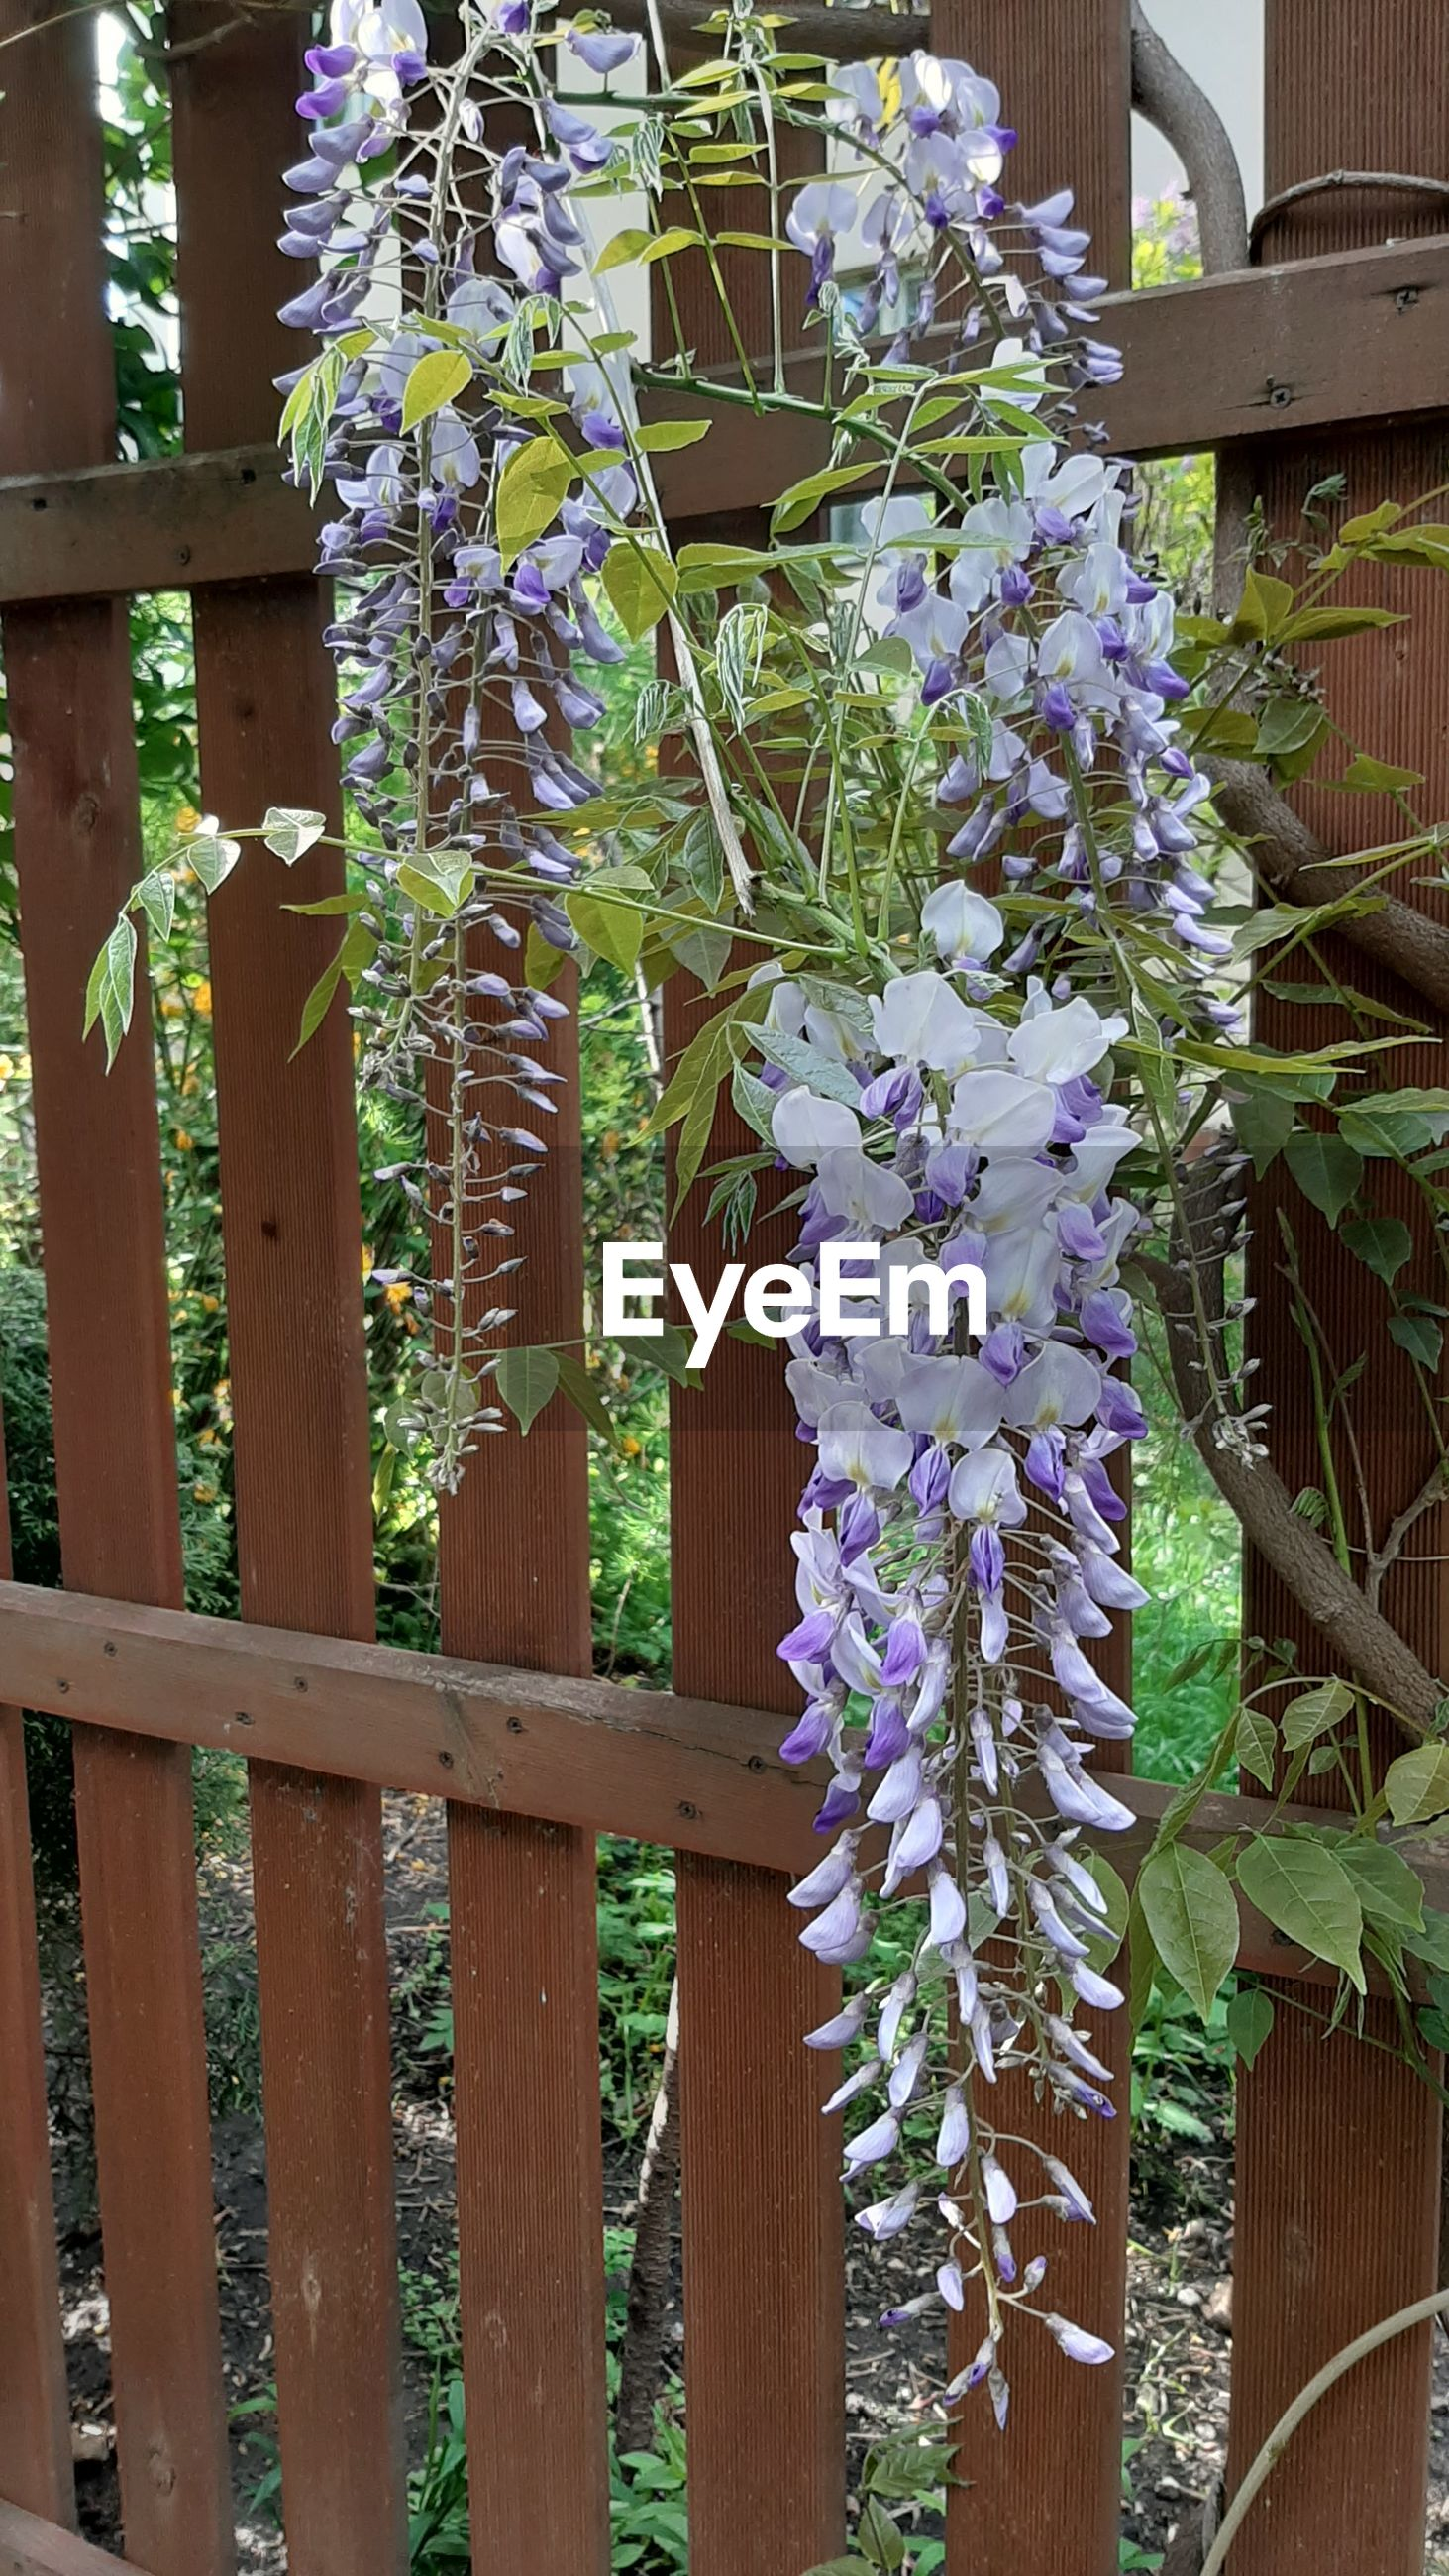 CLOSE-UP OF PURPLE FLOWERING PLANTS GROWING IN FENCE